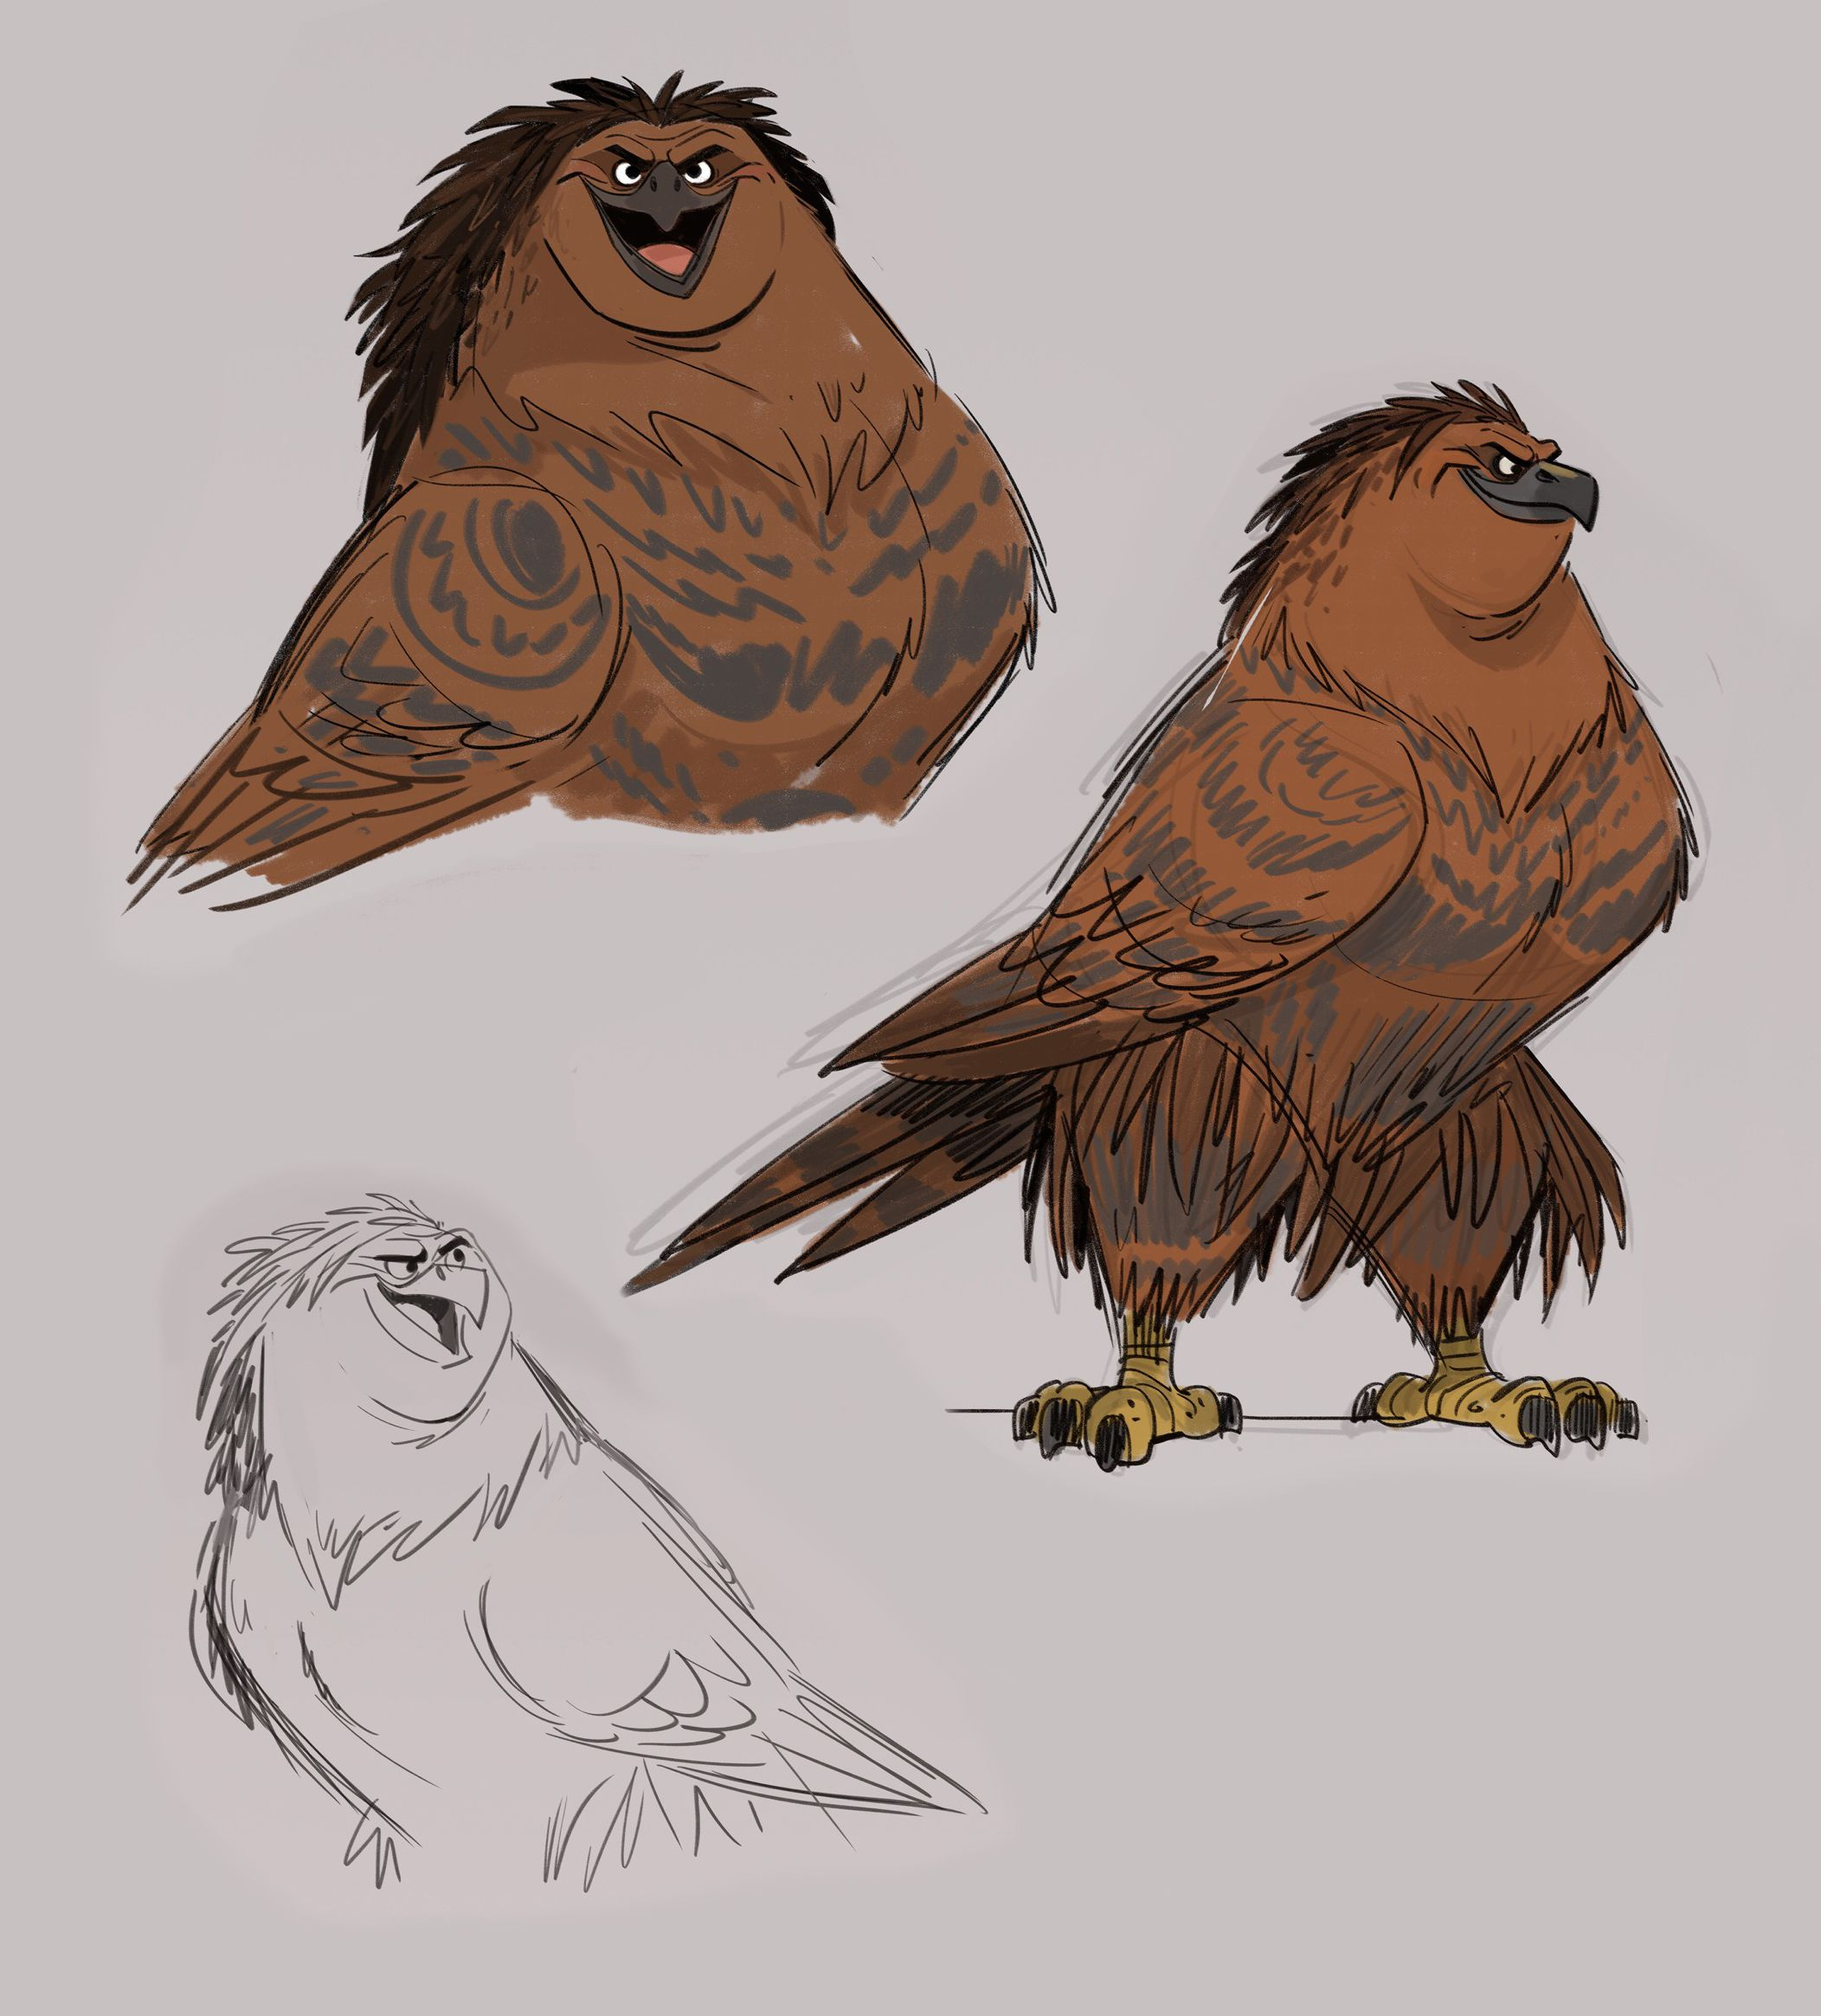 Shapeshifter Character Design : Moana new images reveal concept art and storyboards